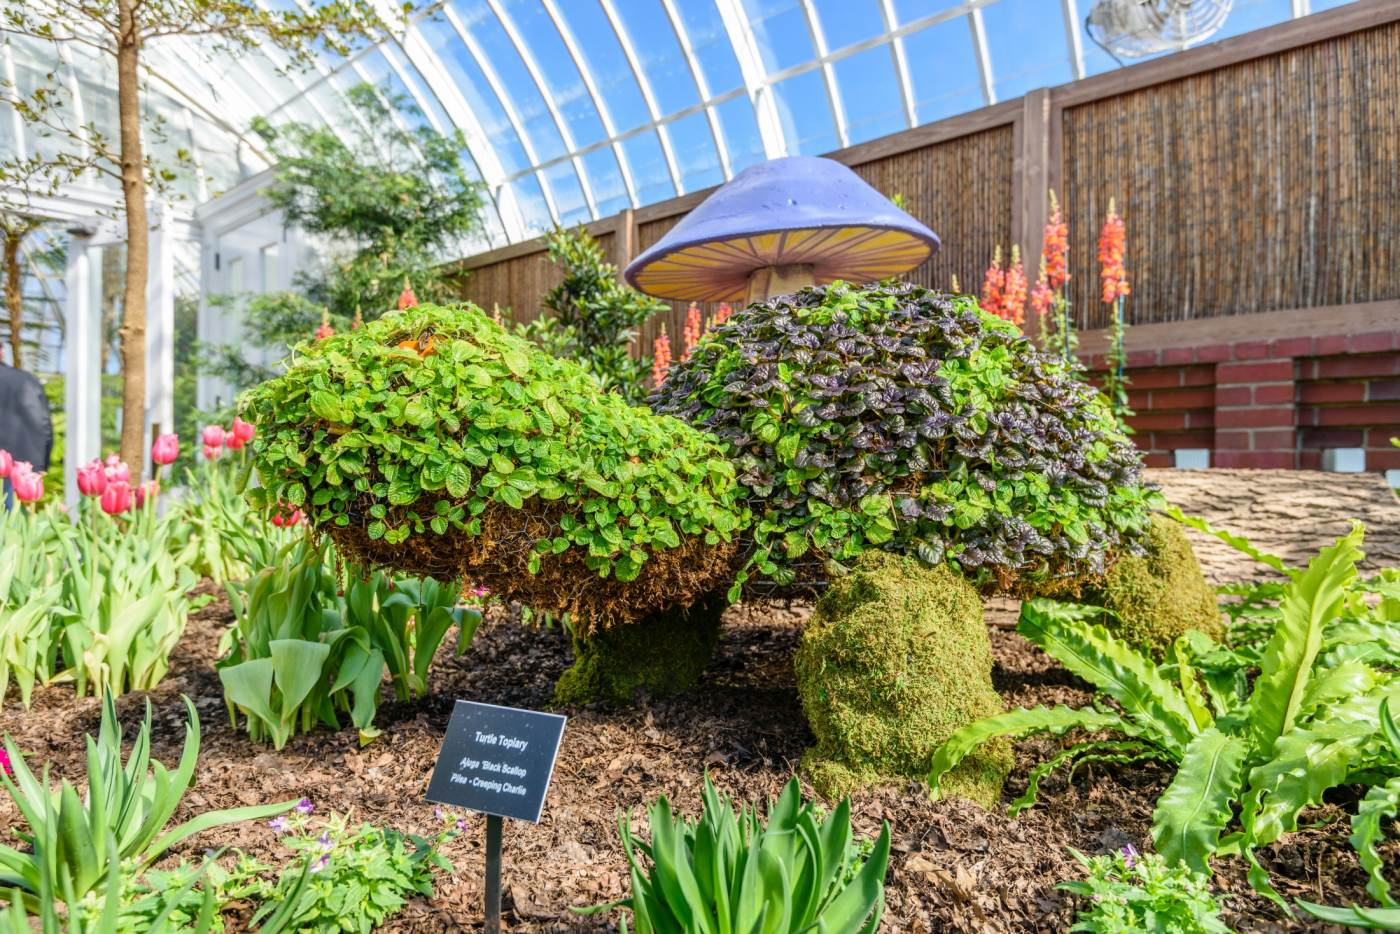 A topiary turtle stands in a bed of flowers in Phipps' Serpentine Room during Spring Flower Show.